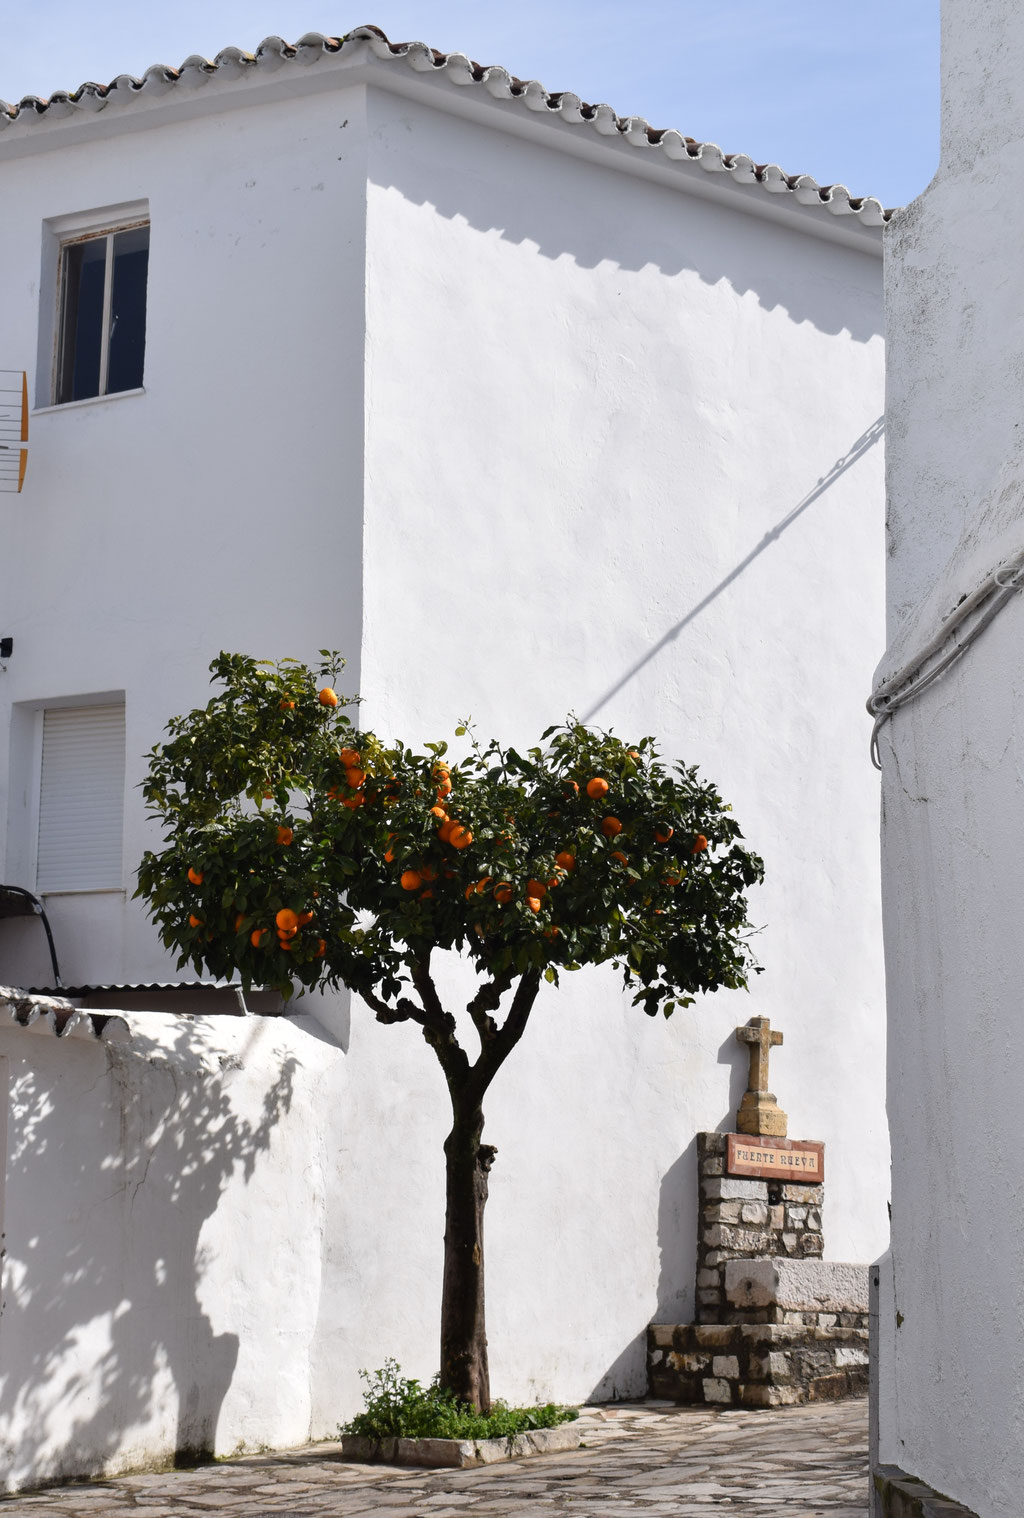 Benaocaz, orange tree